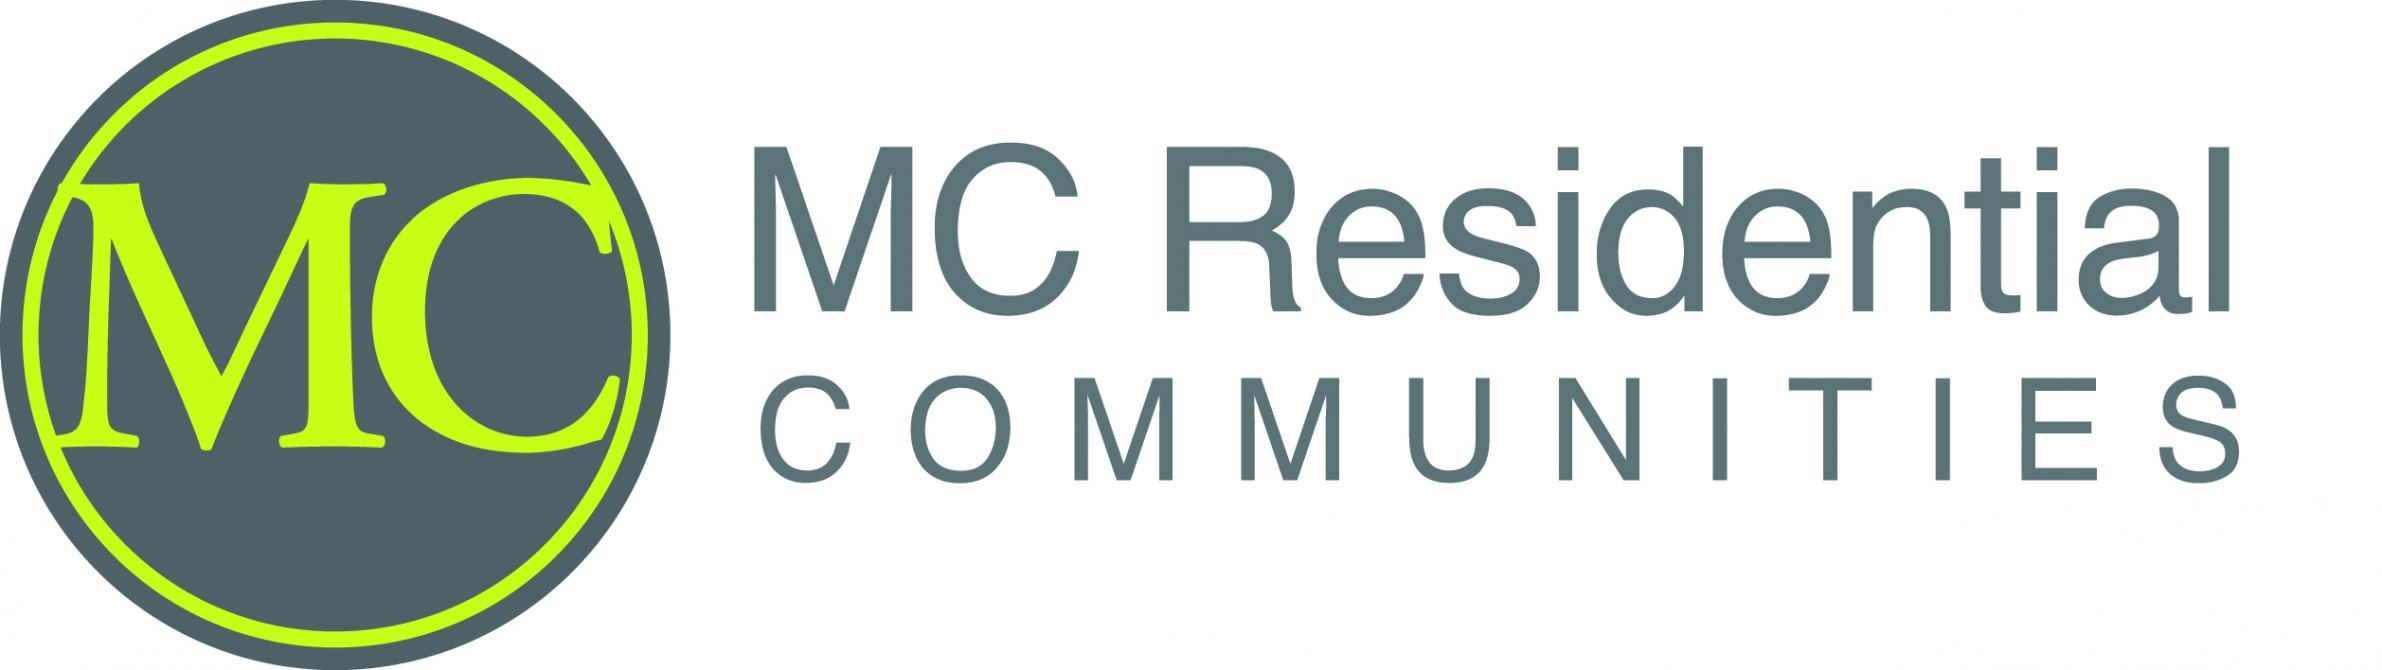 MC Residential Communities